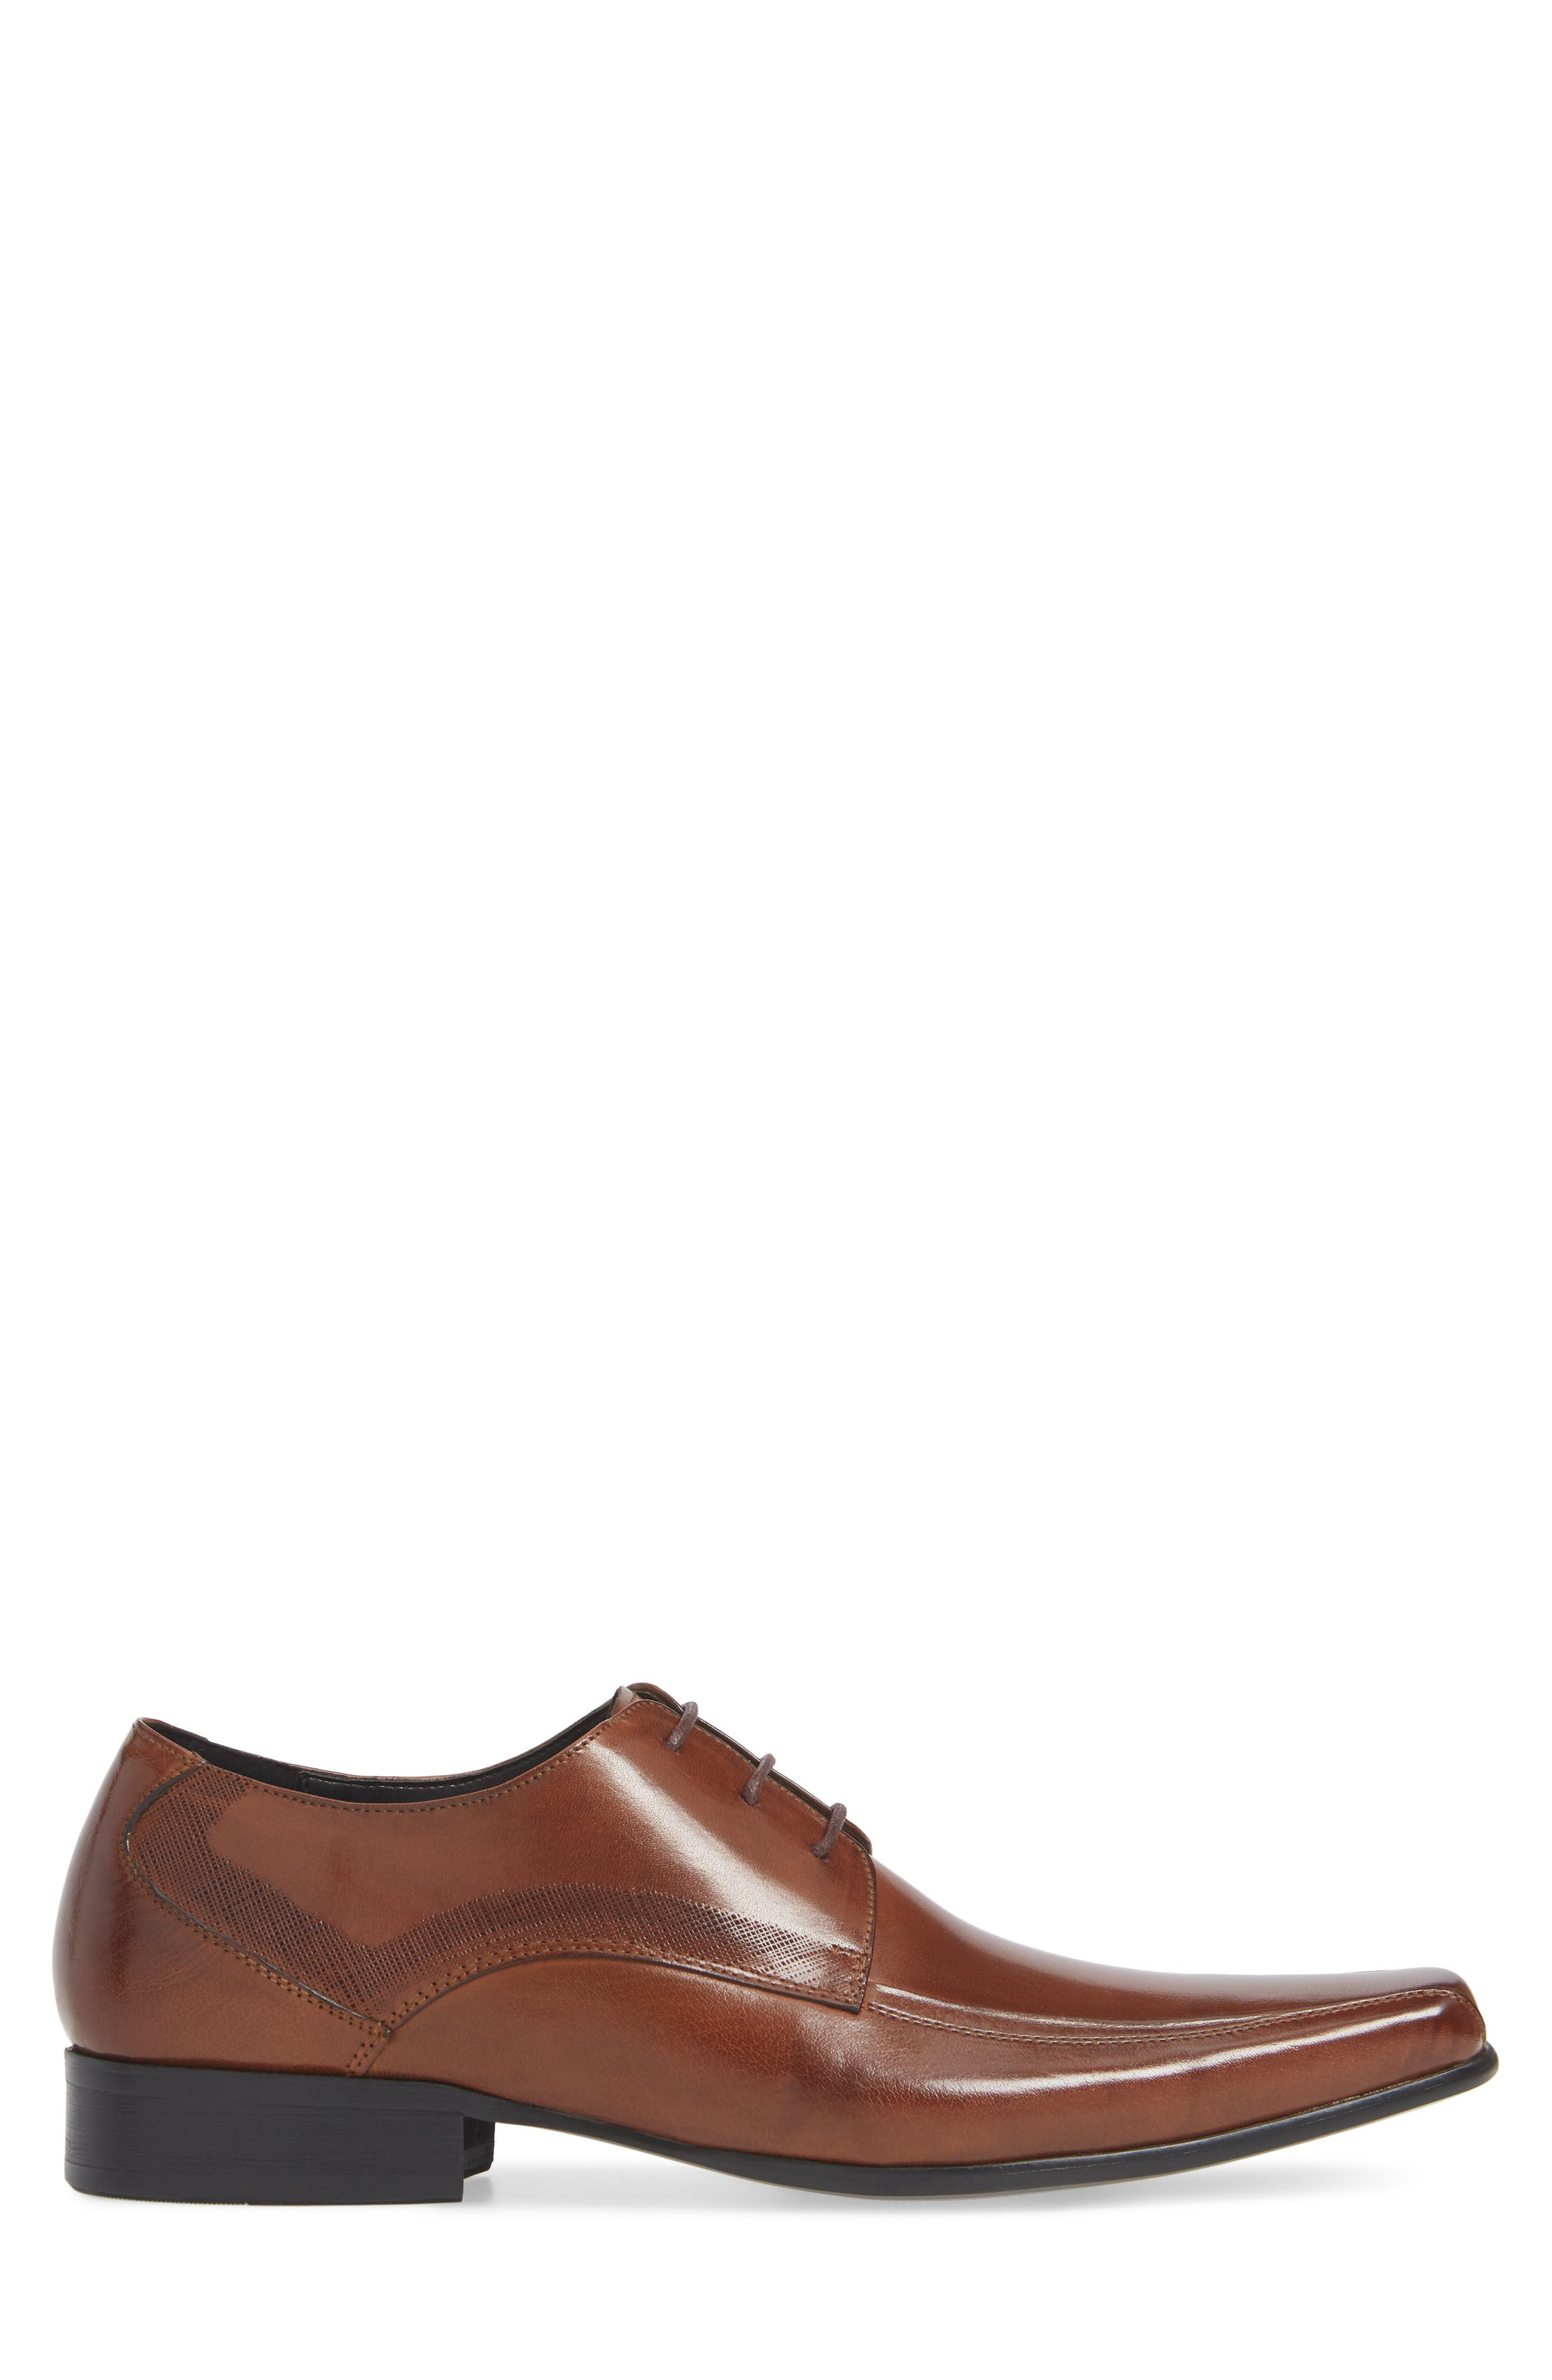 KENNETH COLE NEW YORK, Magic Place Bike Toe Derby, Alternate thumbnail 3, color, COGNAC LEATHER